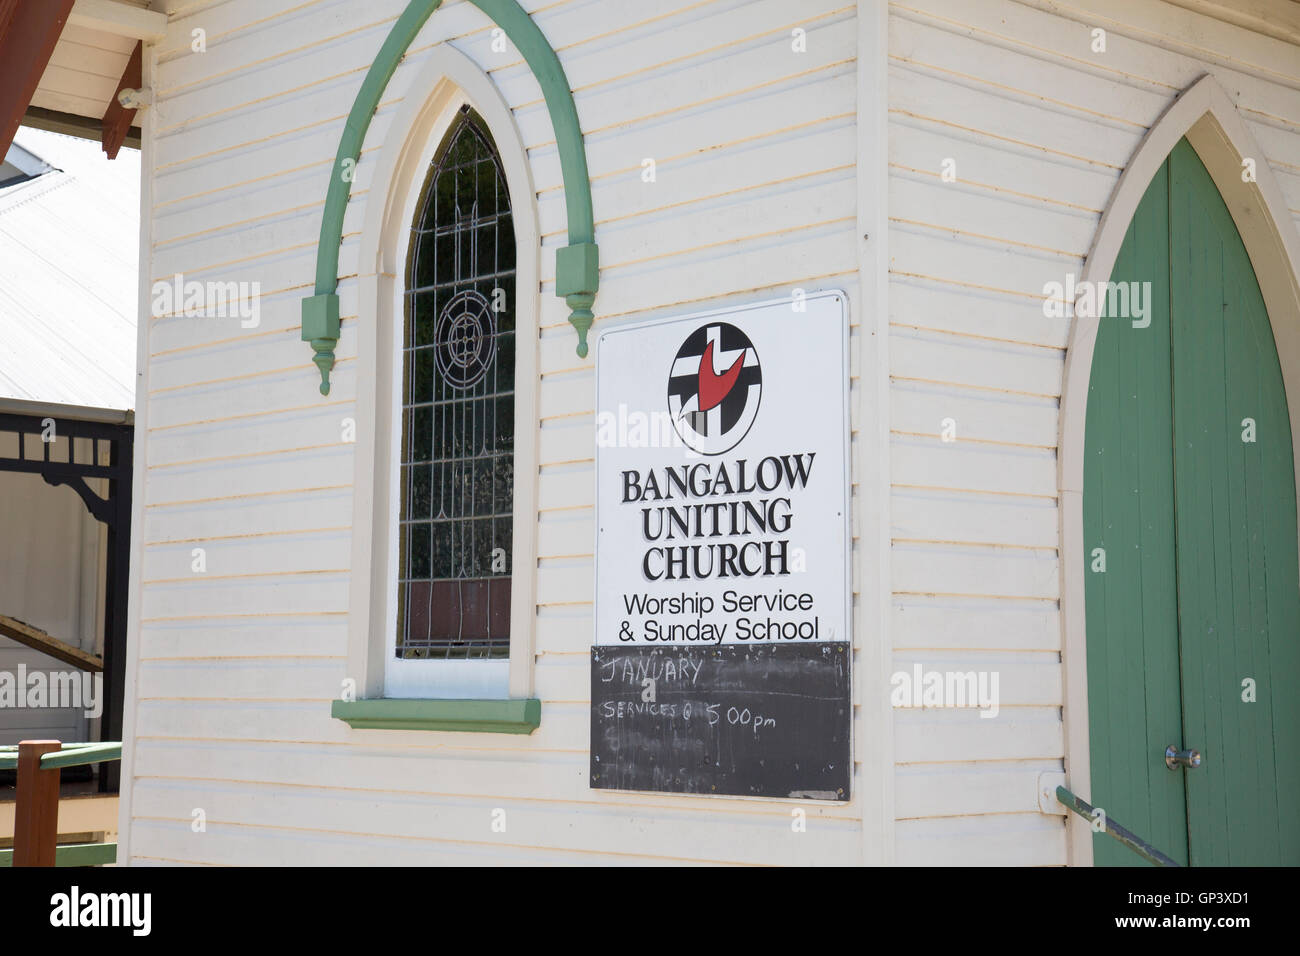 Bangalow Uniting Church building in this village in northern new south wales,Australia - Stock Image